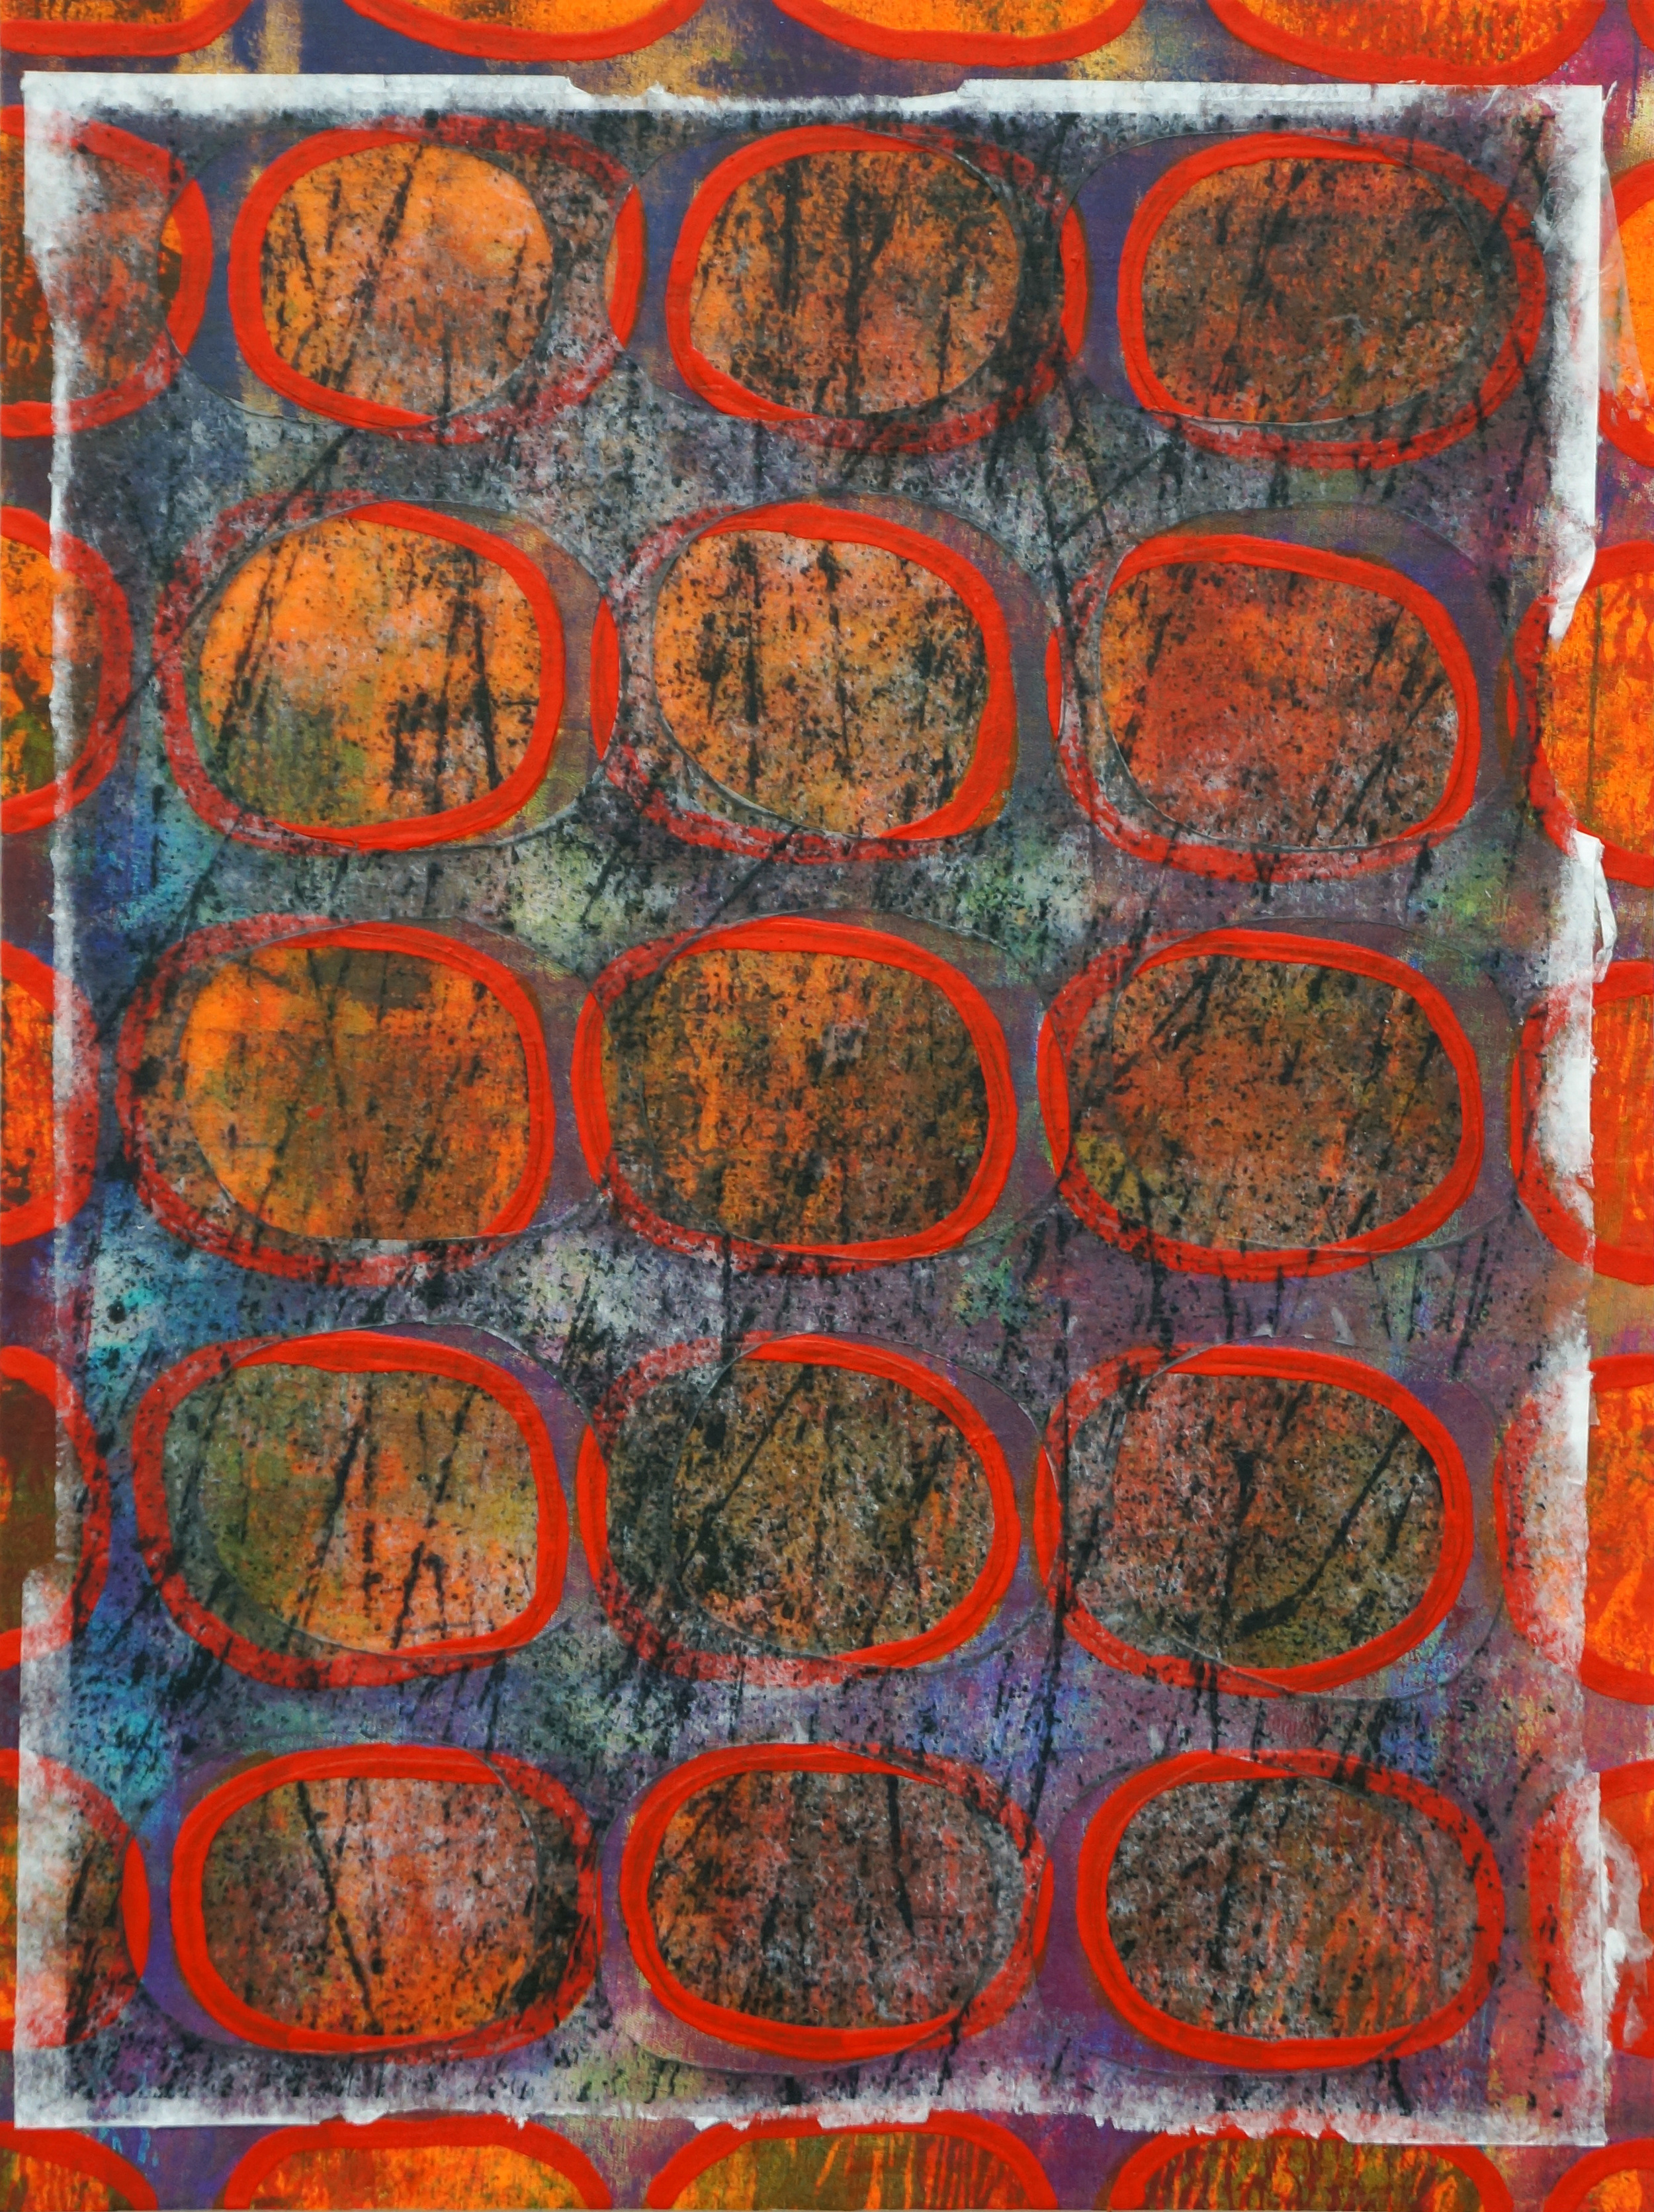 Jeanne Williamson, Bubbles and Cracks on Ice on Fences #4 , mixed media on cradled board, 14x14